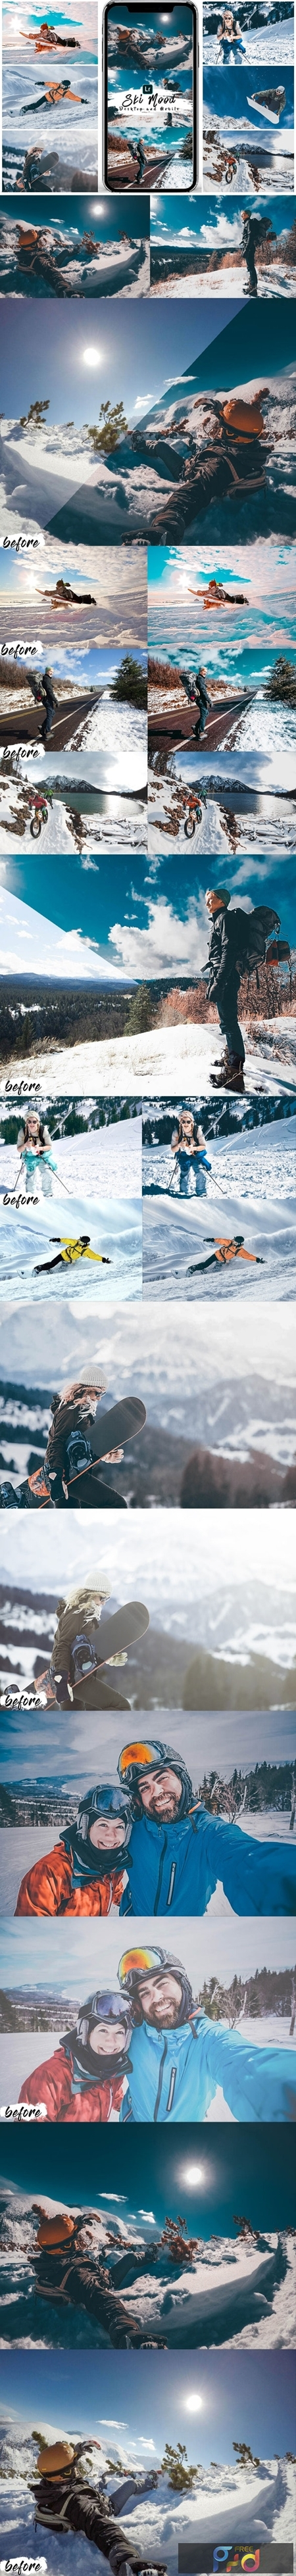 Ski Mood Presets For Mobile and Desktop Lightroom 25560611 1